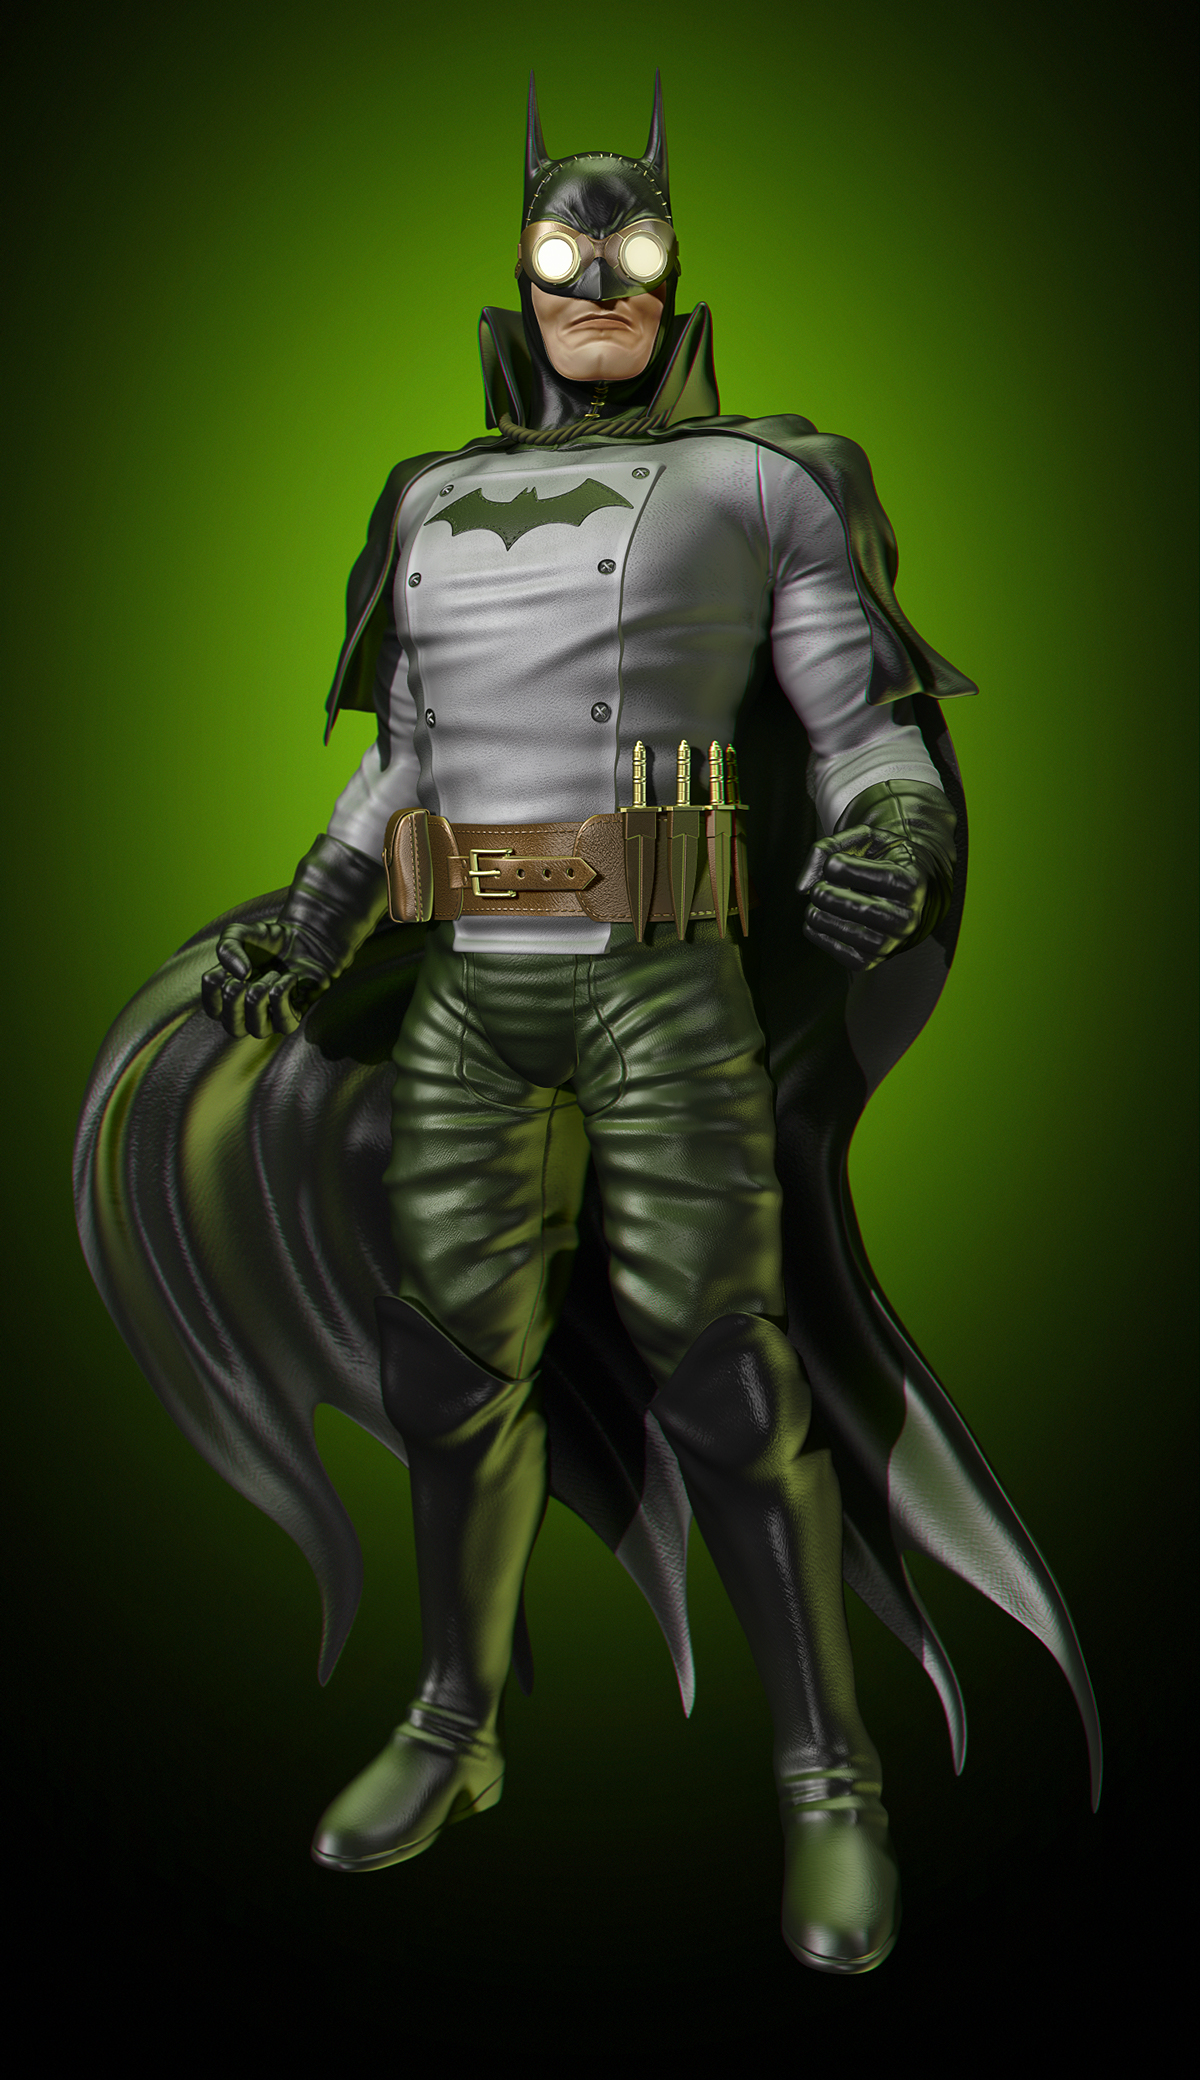 Gotham by Gaslight belongs to a series of graphic novels called u0027Elseworldsu0027 where several DC heroes are set in alternate realities. Here Batman hunts ... & Batman 75 years project | ZERO on Behance